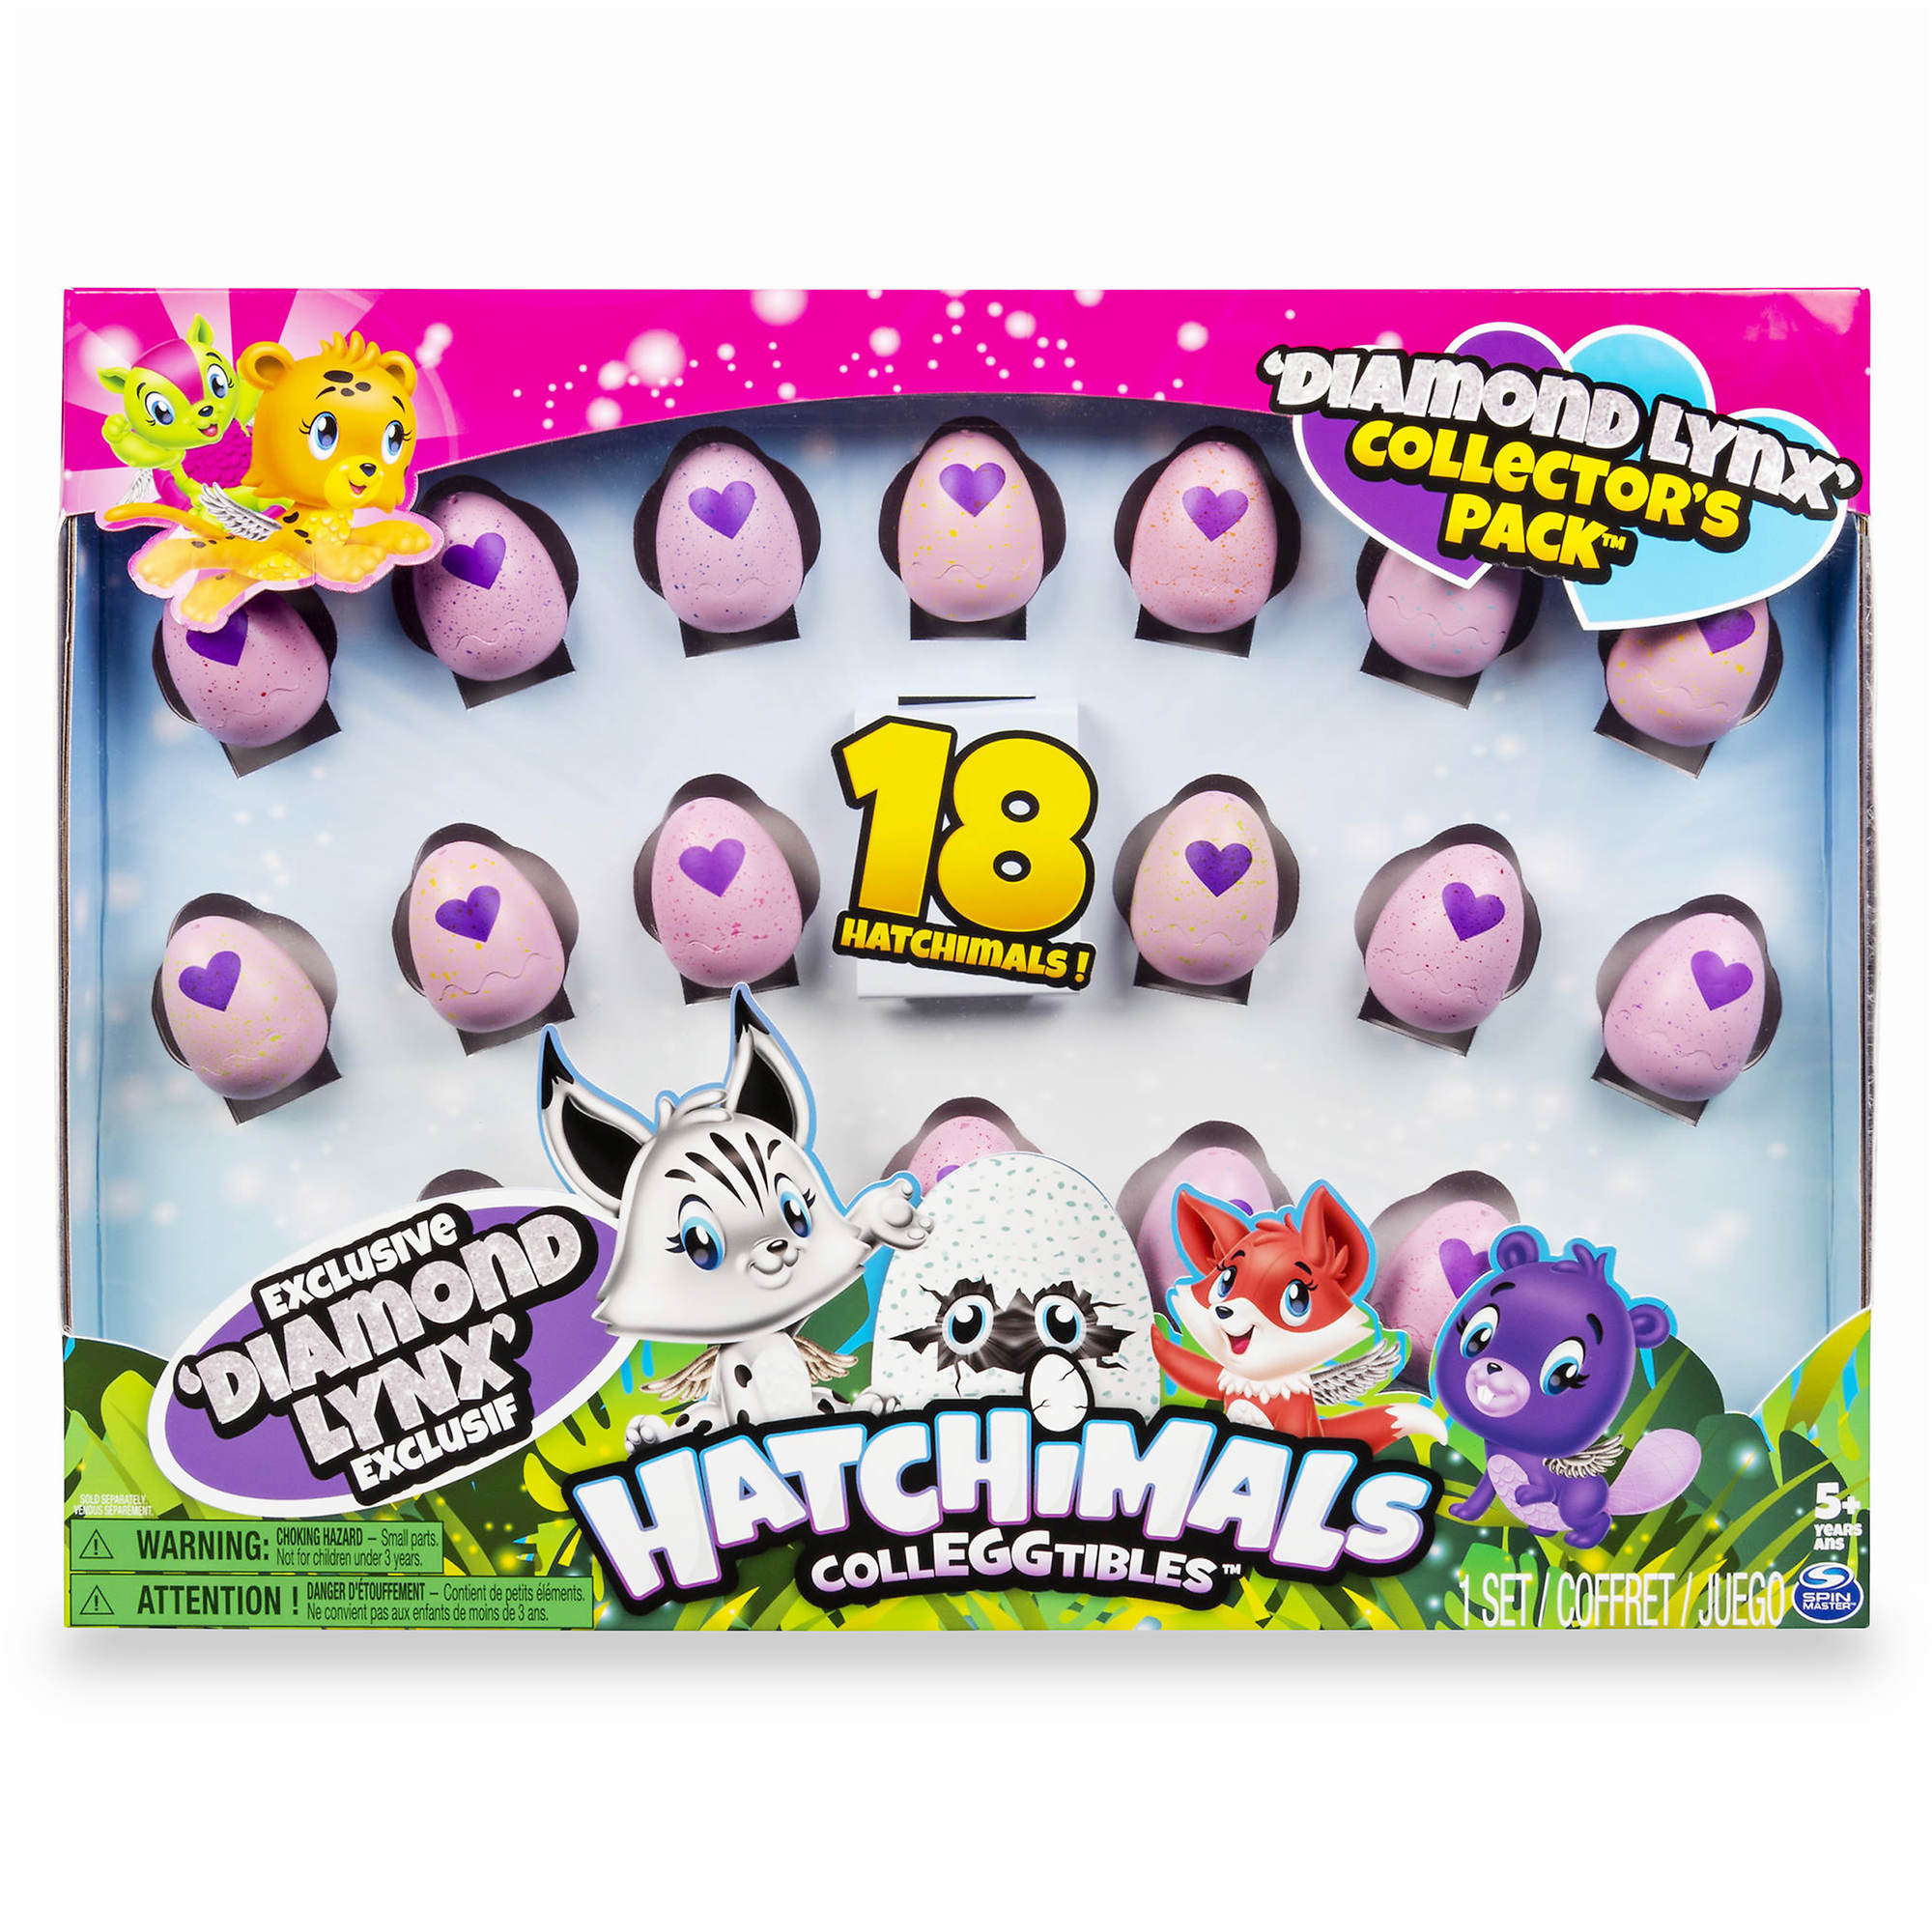 Hatchimals Colleggtibles Diamond Lynx Collectors Pack Mystery 18-Pack